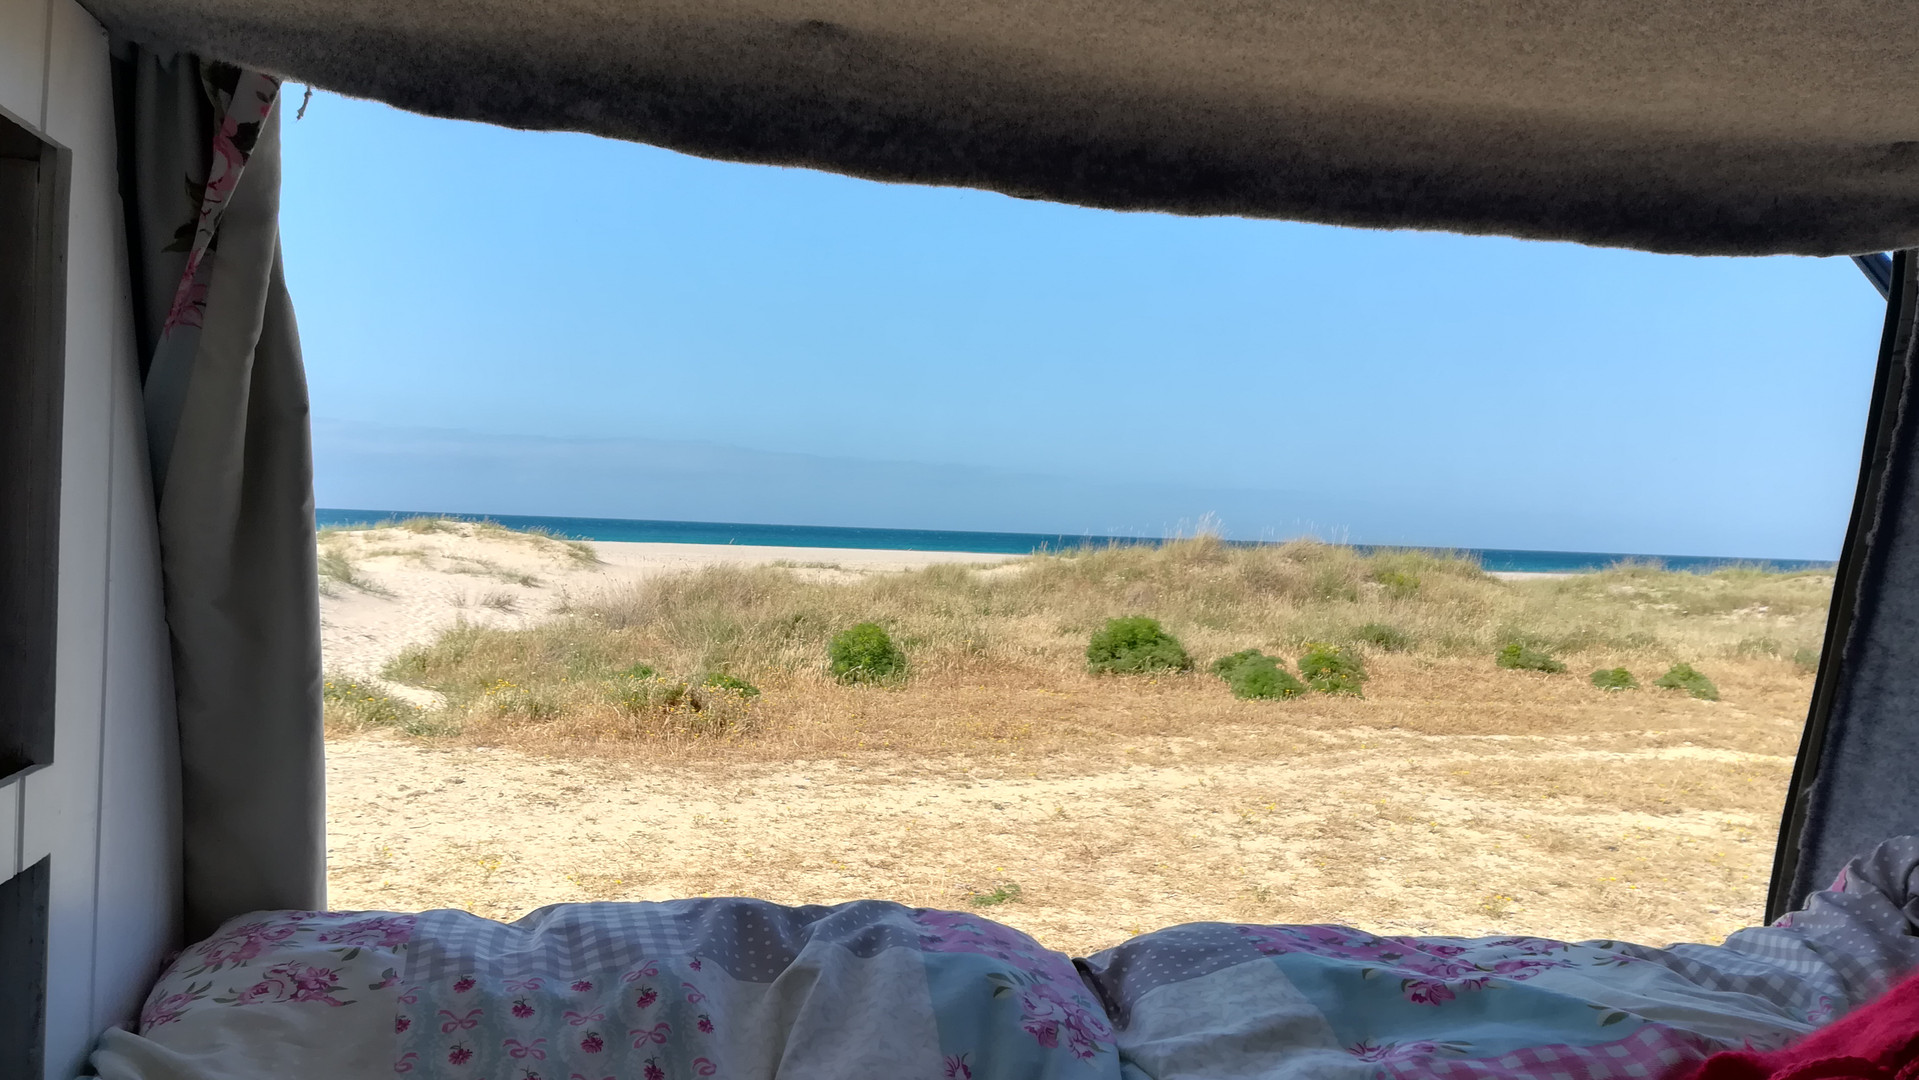 Camping on the beach, Tarifa